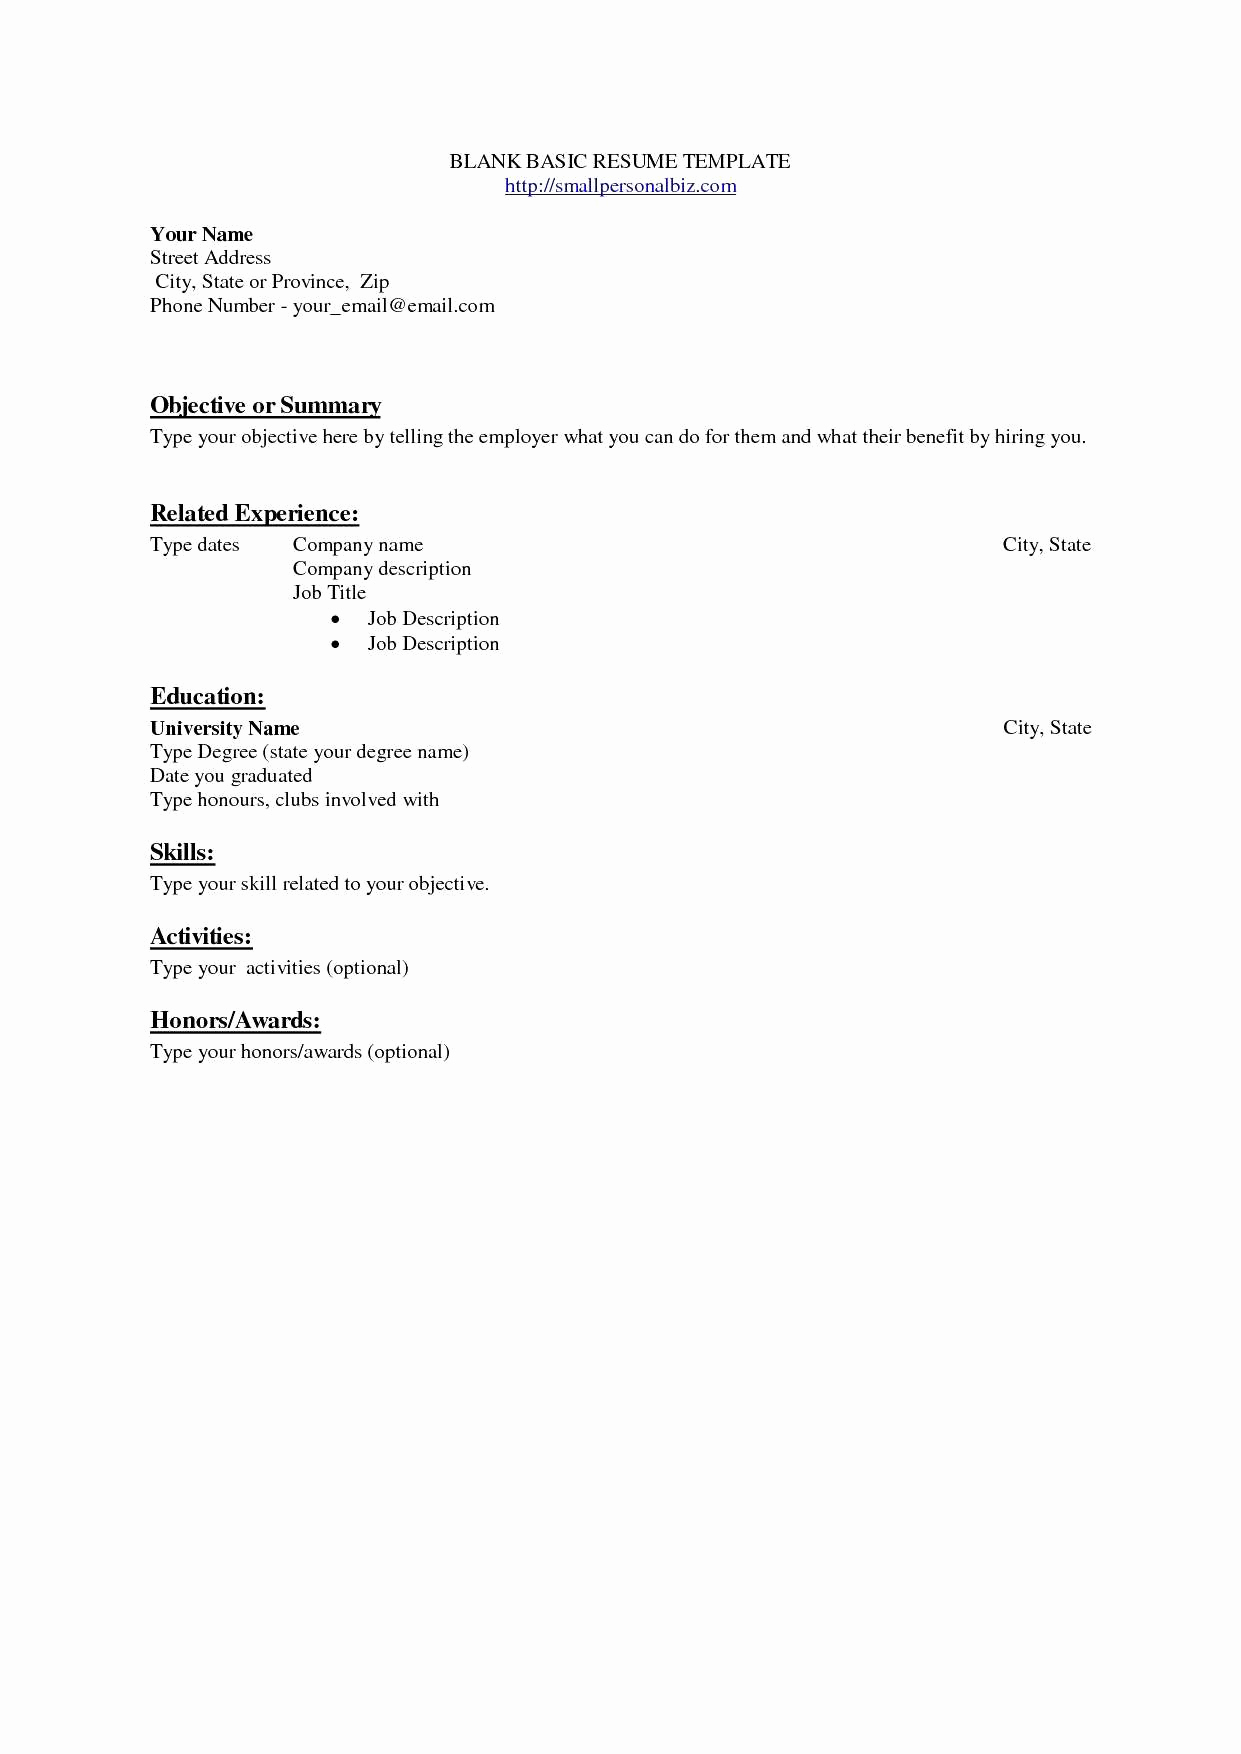 Housekeeping Job Description for Resume - 30 Housekeeping Description for Resume